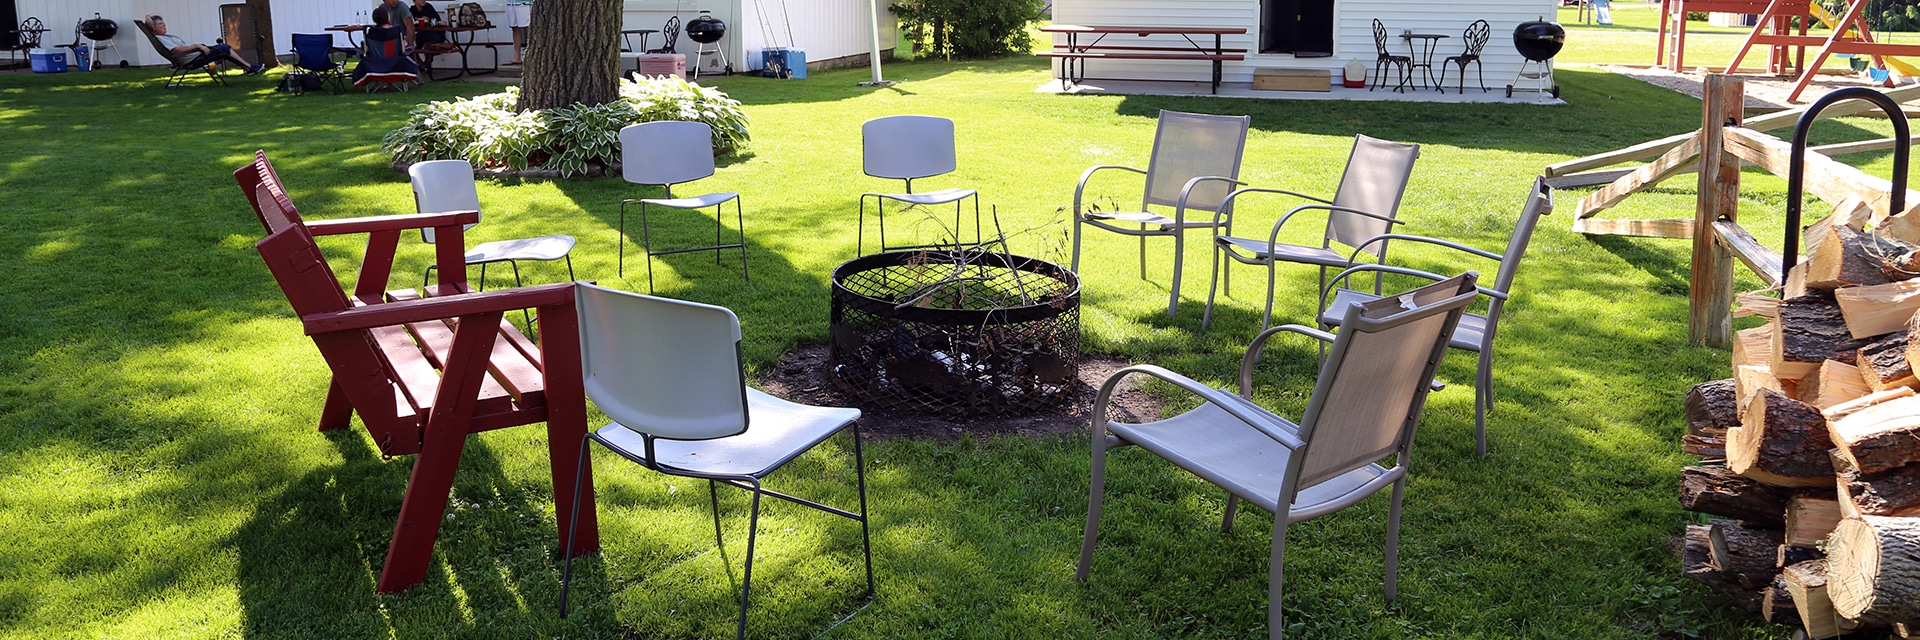 View of the Bonfire Area in the Courtyard